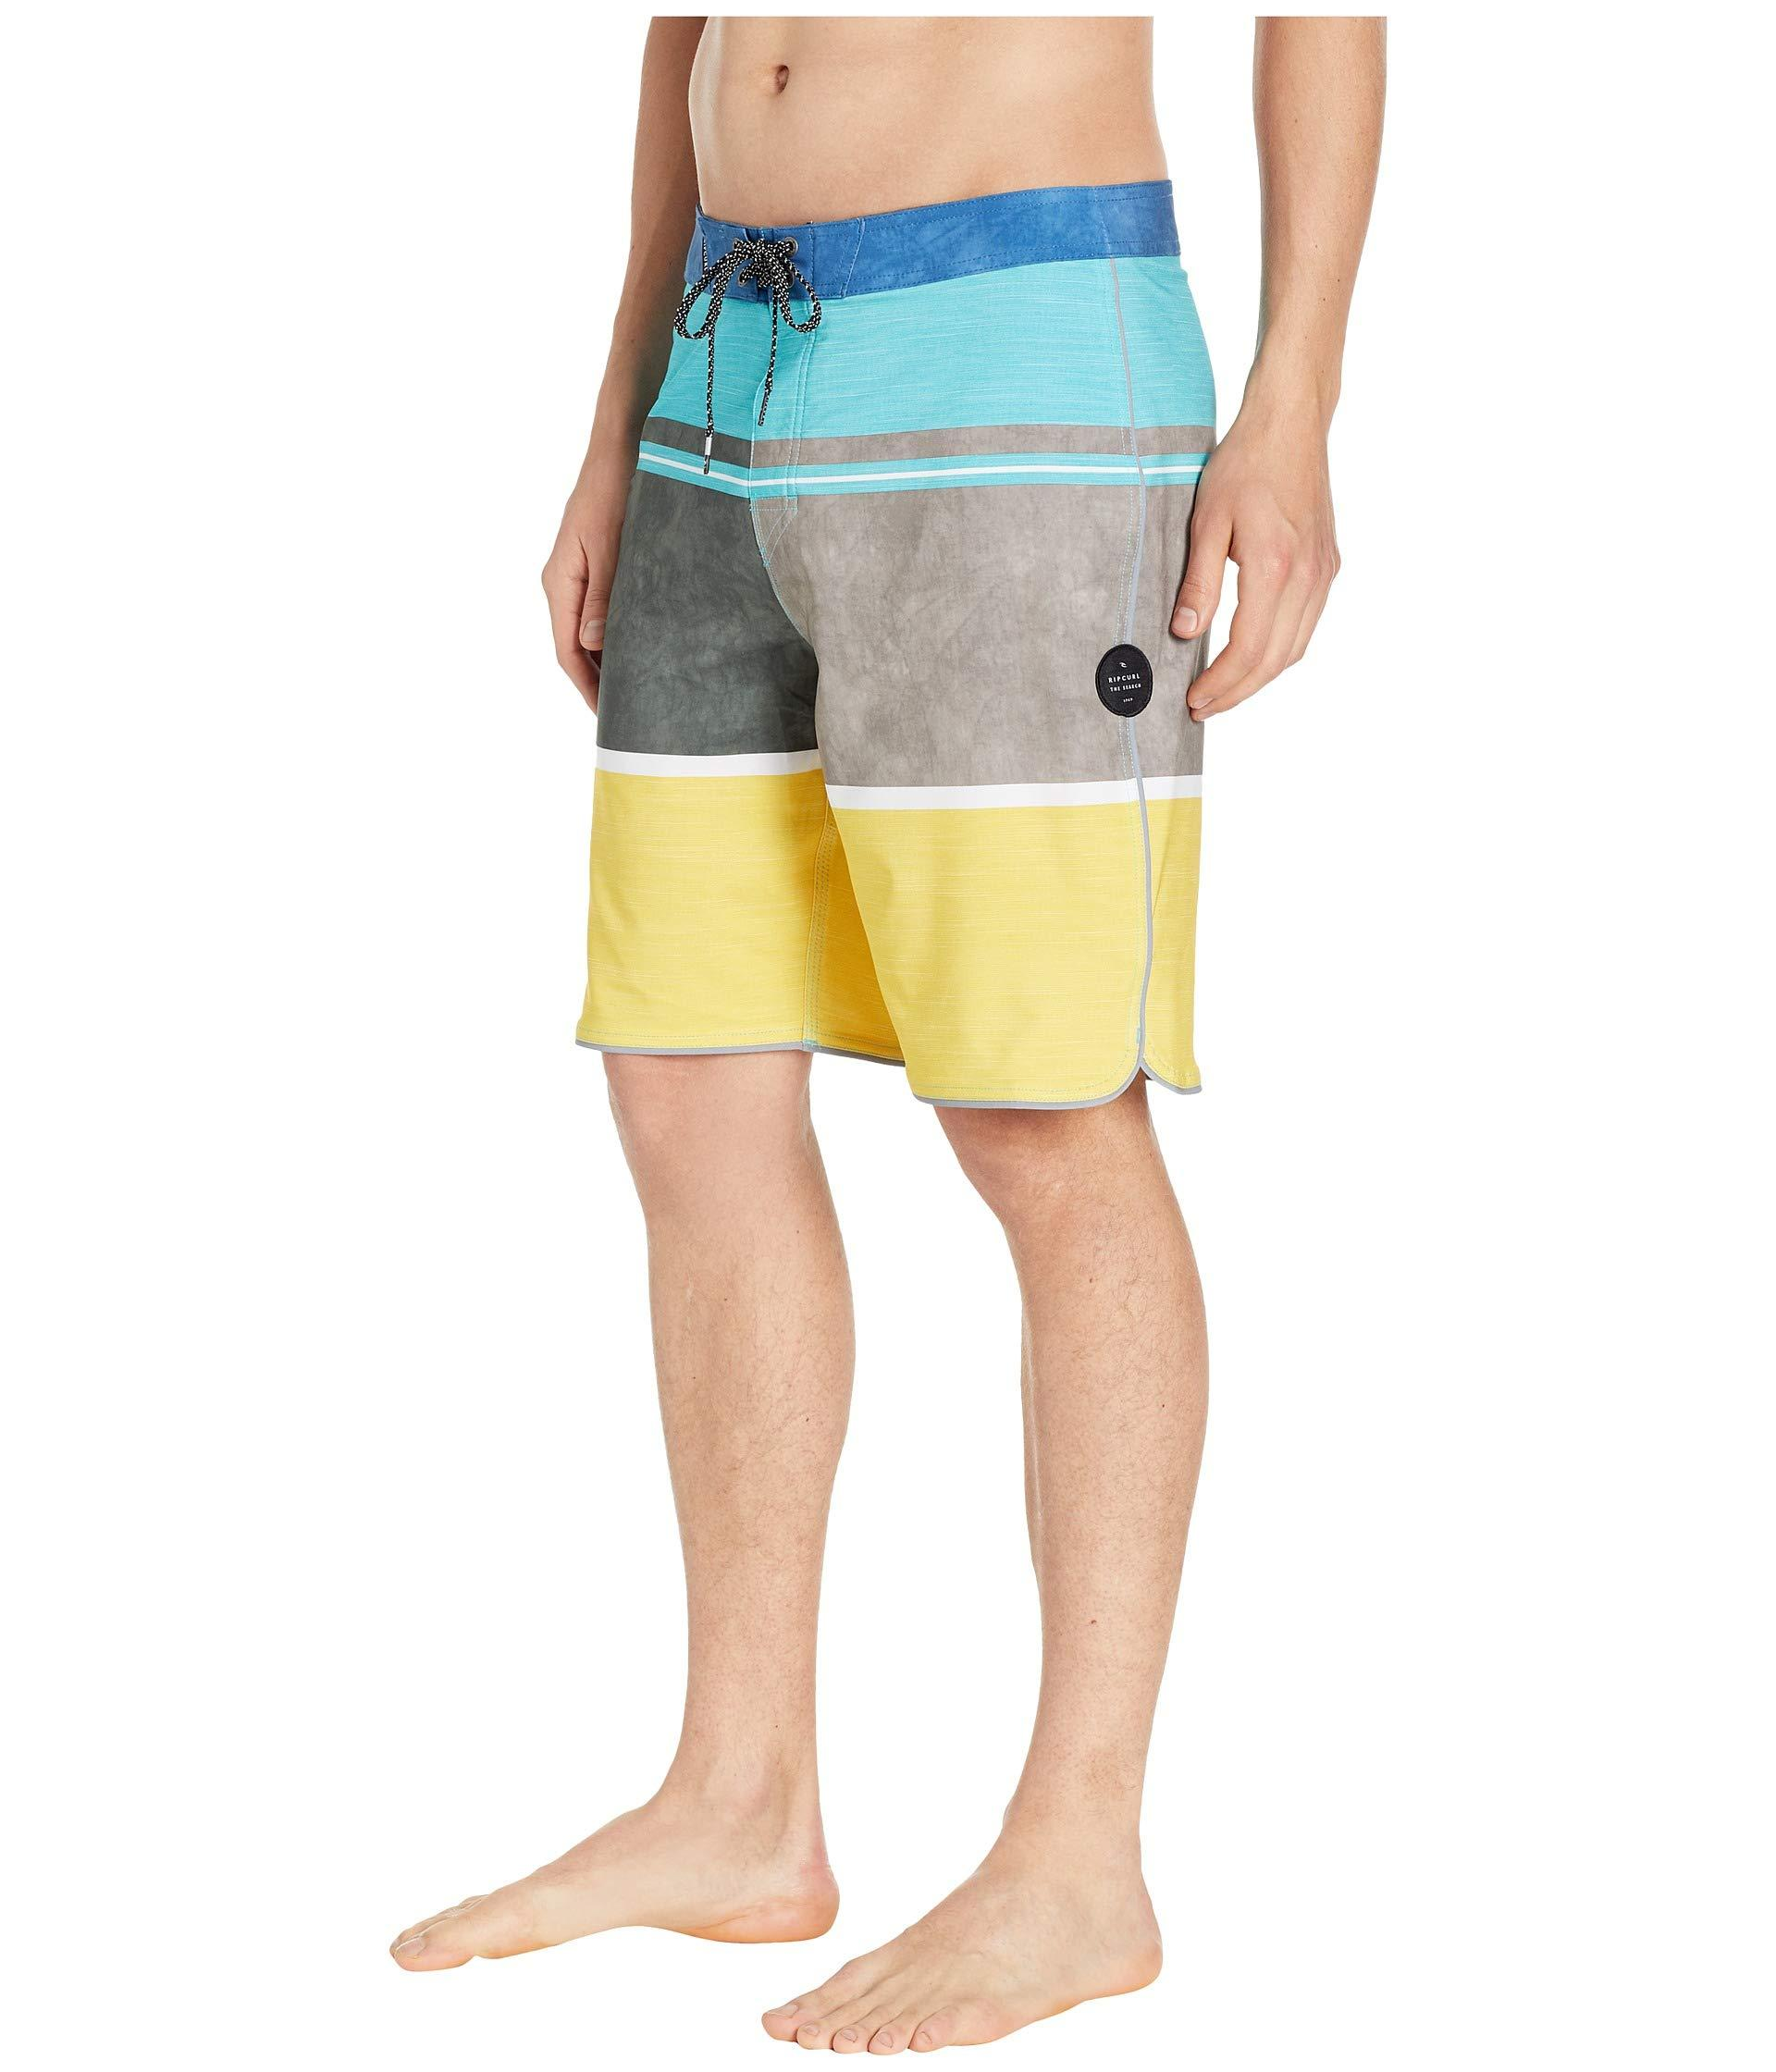 b4602b45ec Lyst - Rip Curl Mirage Shelter Boardshorts (blue) Men's Swimwear in Gray for  Men